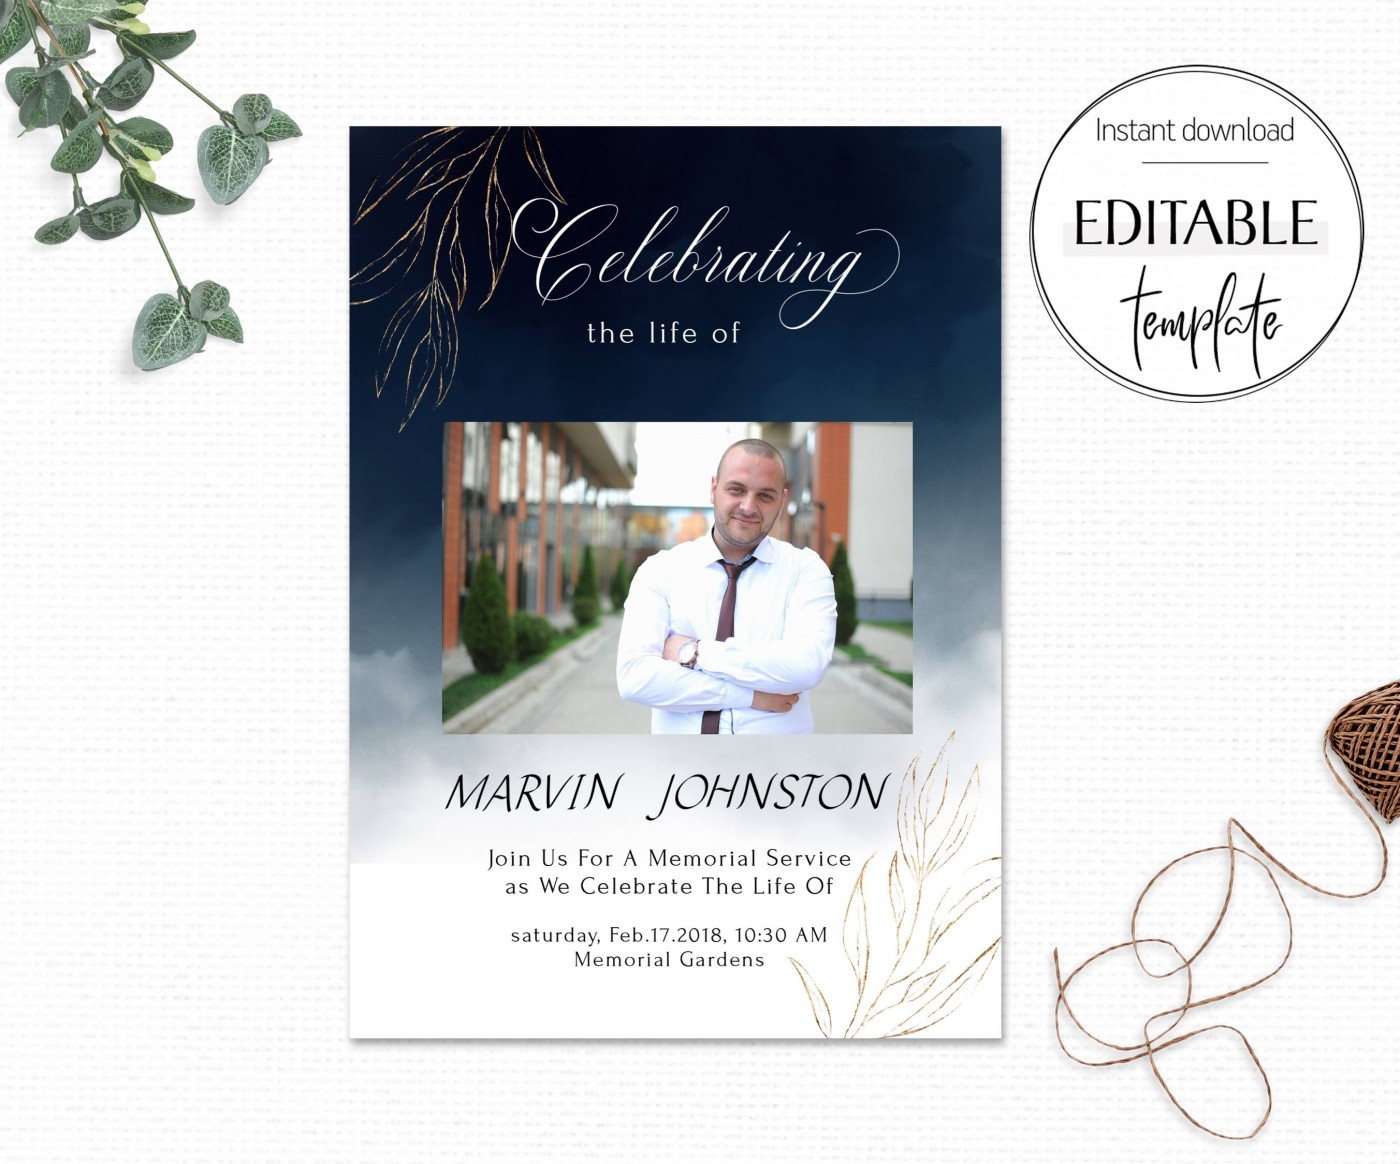 007 Rare Celebration Of Life Invite Template Free Image  Invitation Download1400